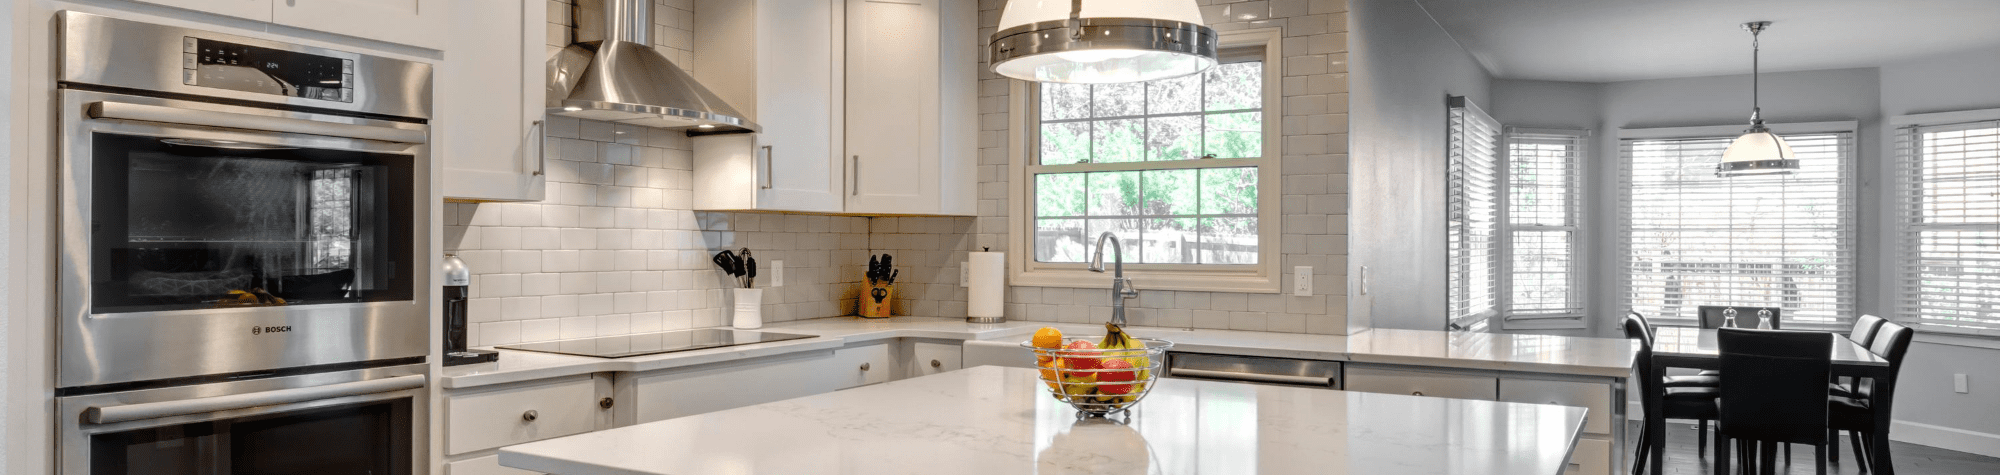 4 Steps to Plan a Perfect Kitchen Remodel